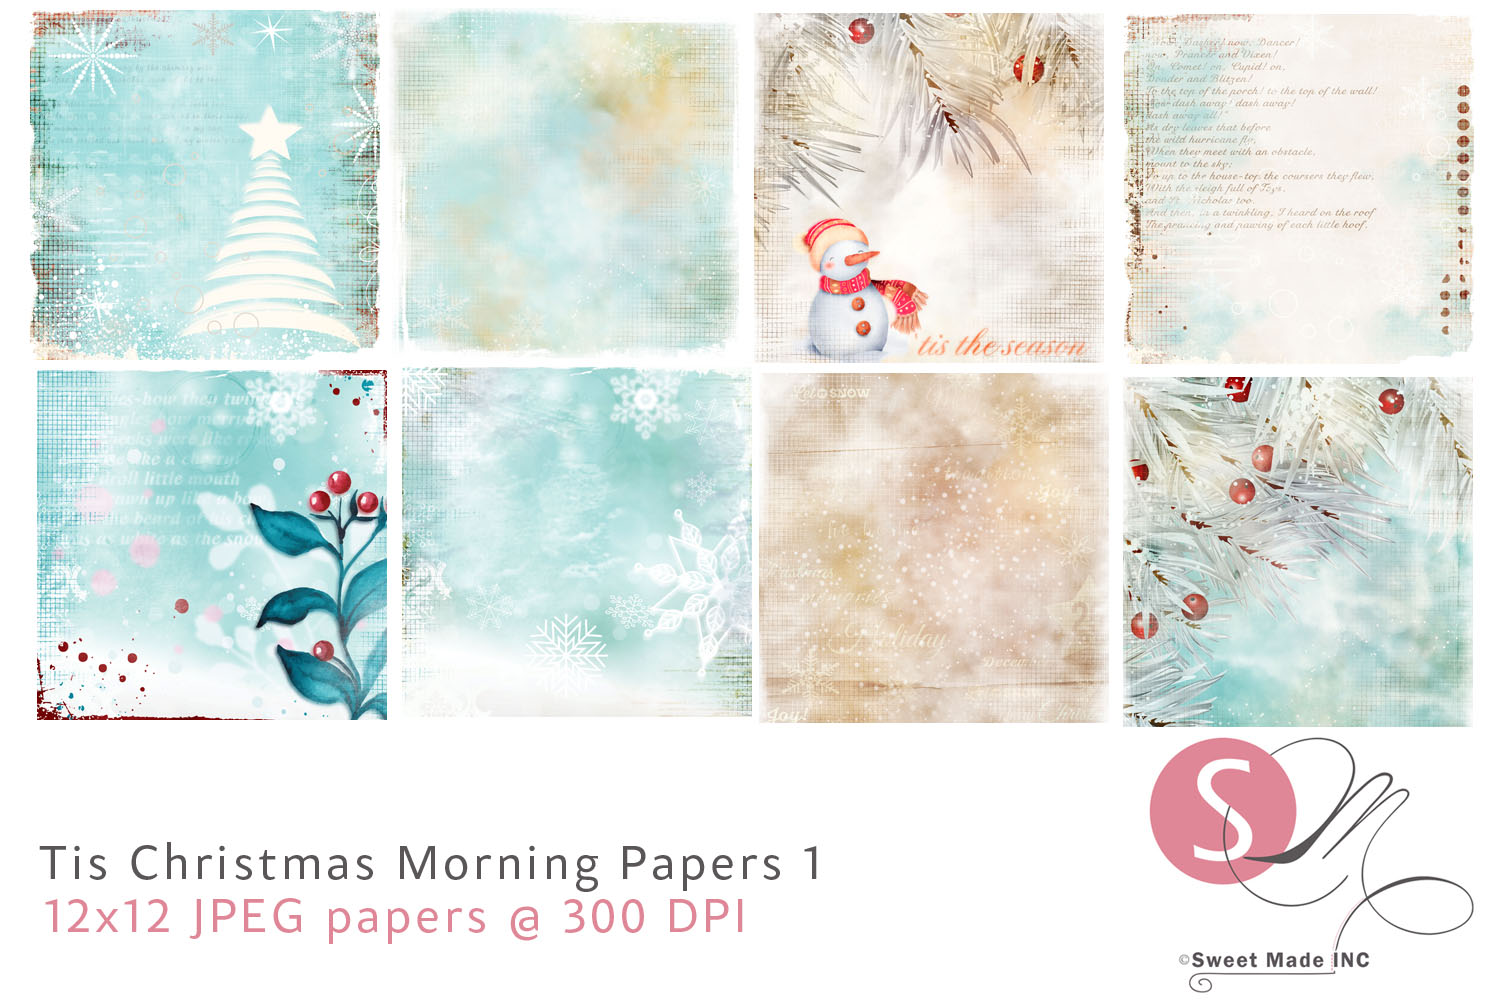 Tis Christmas Morning Papers 1 example image 1